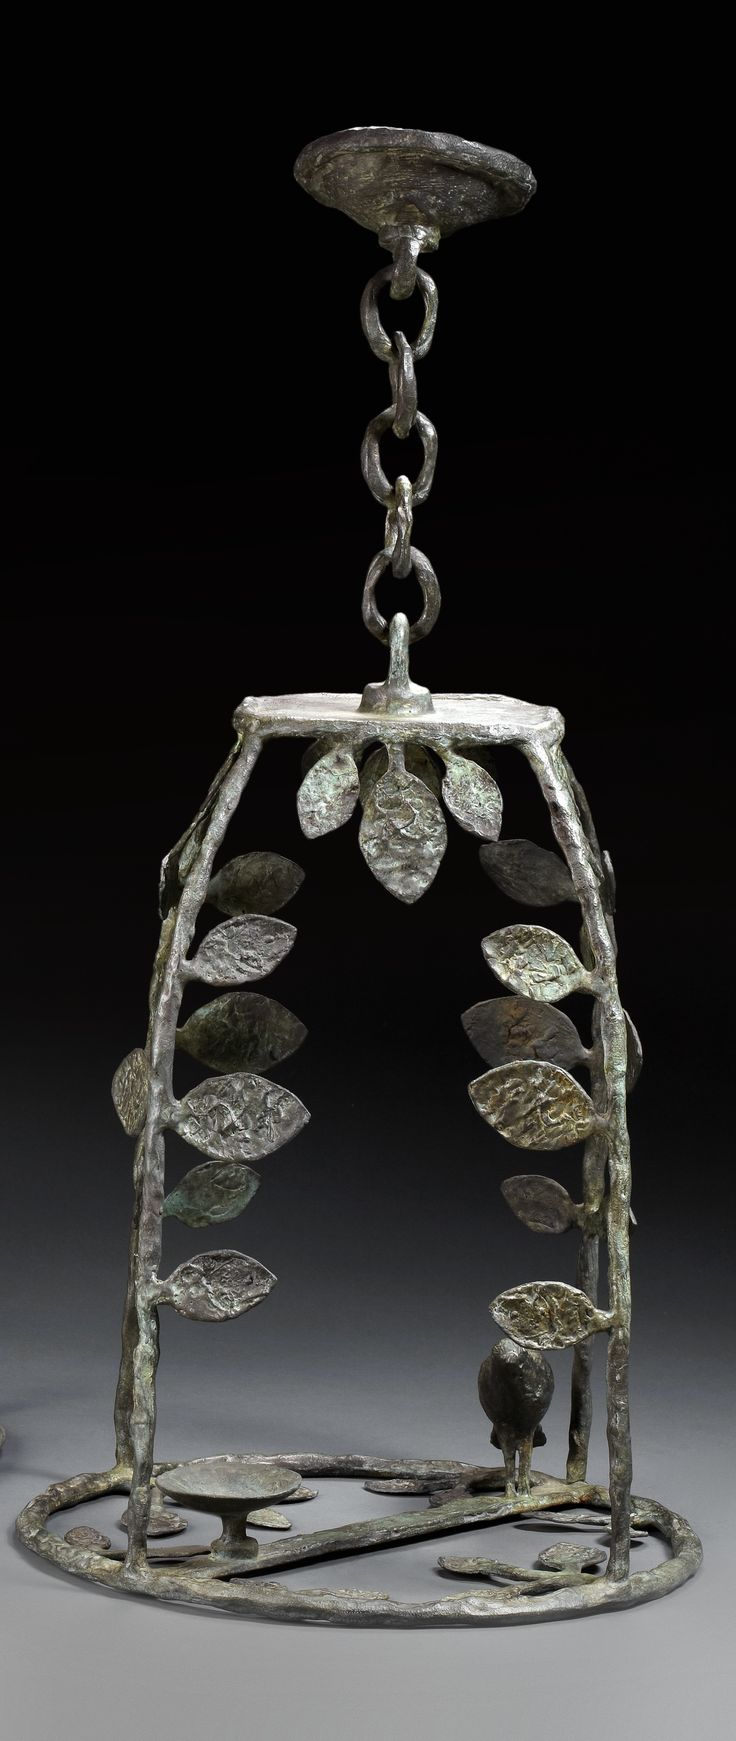 Diego GIACOMETTI (1902-1985) Hanging lantern  Bronze with antique patina. Model with four posts decorated  to resemble leafy branches, a bird is perched on a branch  with a small cup on the round base. 31. 8 x 16.1 in. - 81 x 41 cm.